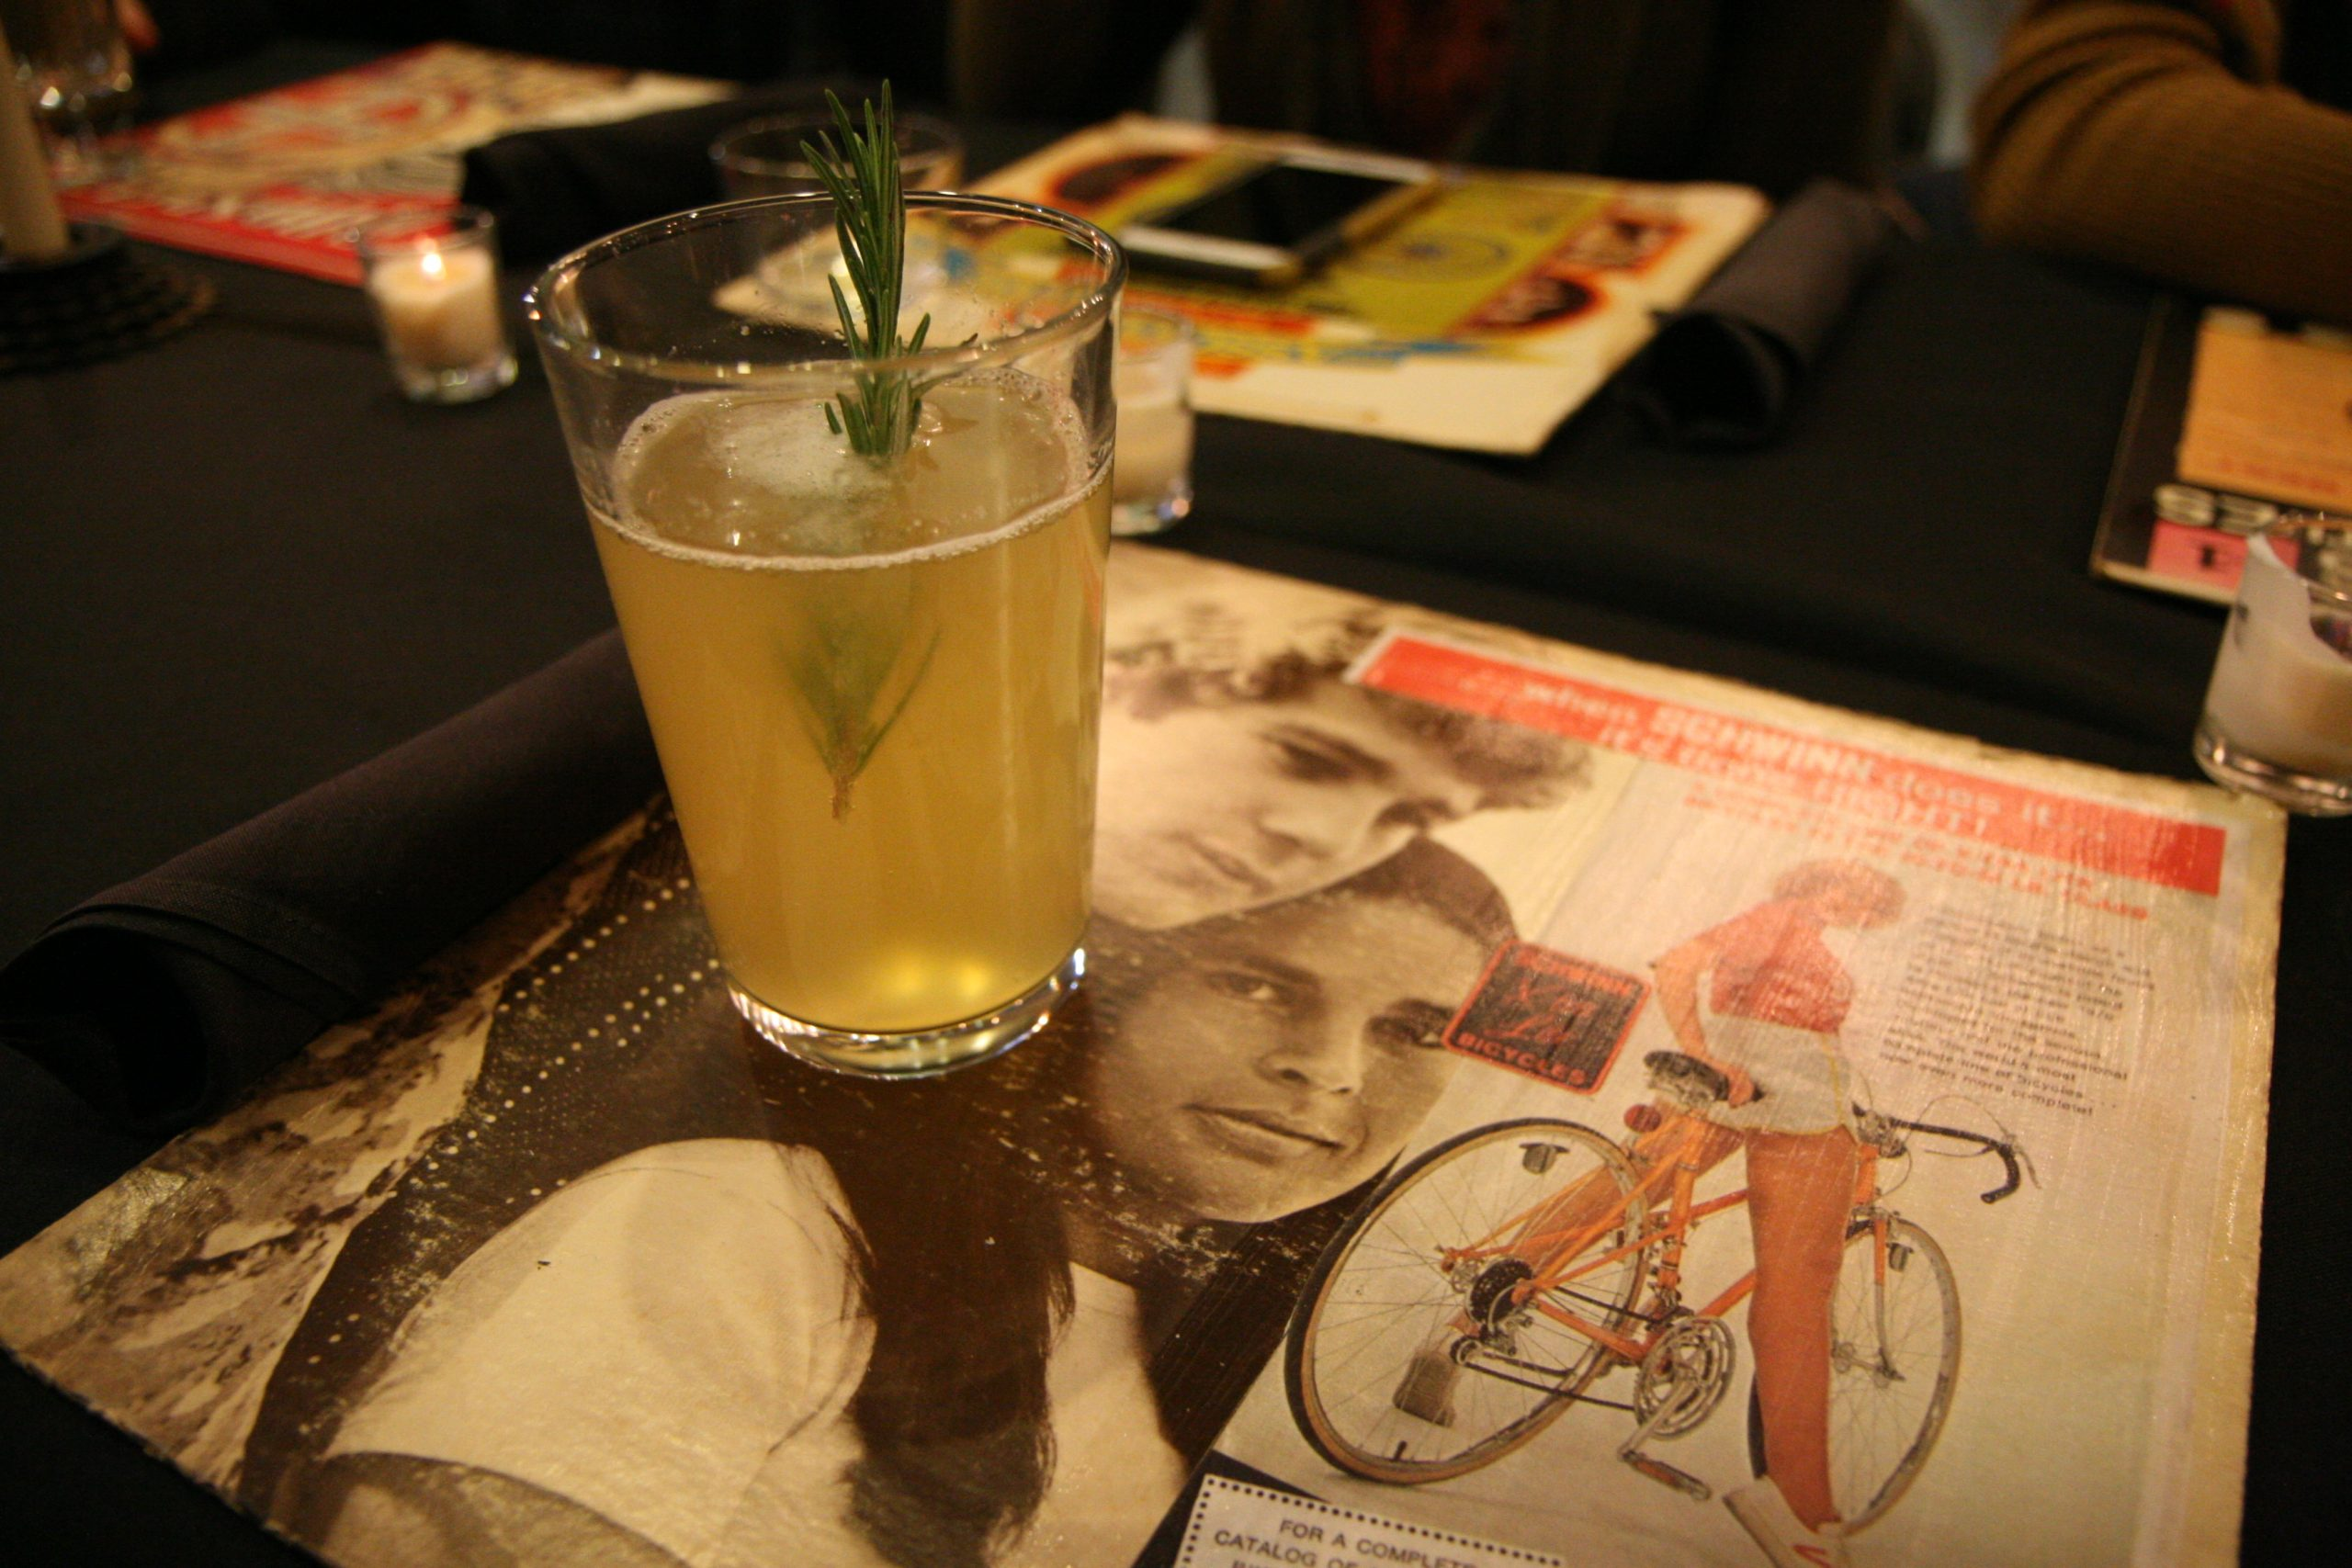 Toolan's radler with rosemary; the placemats were record covers with old Schwinn ads pasted on them.